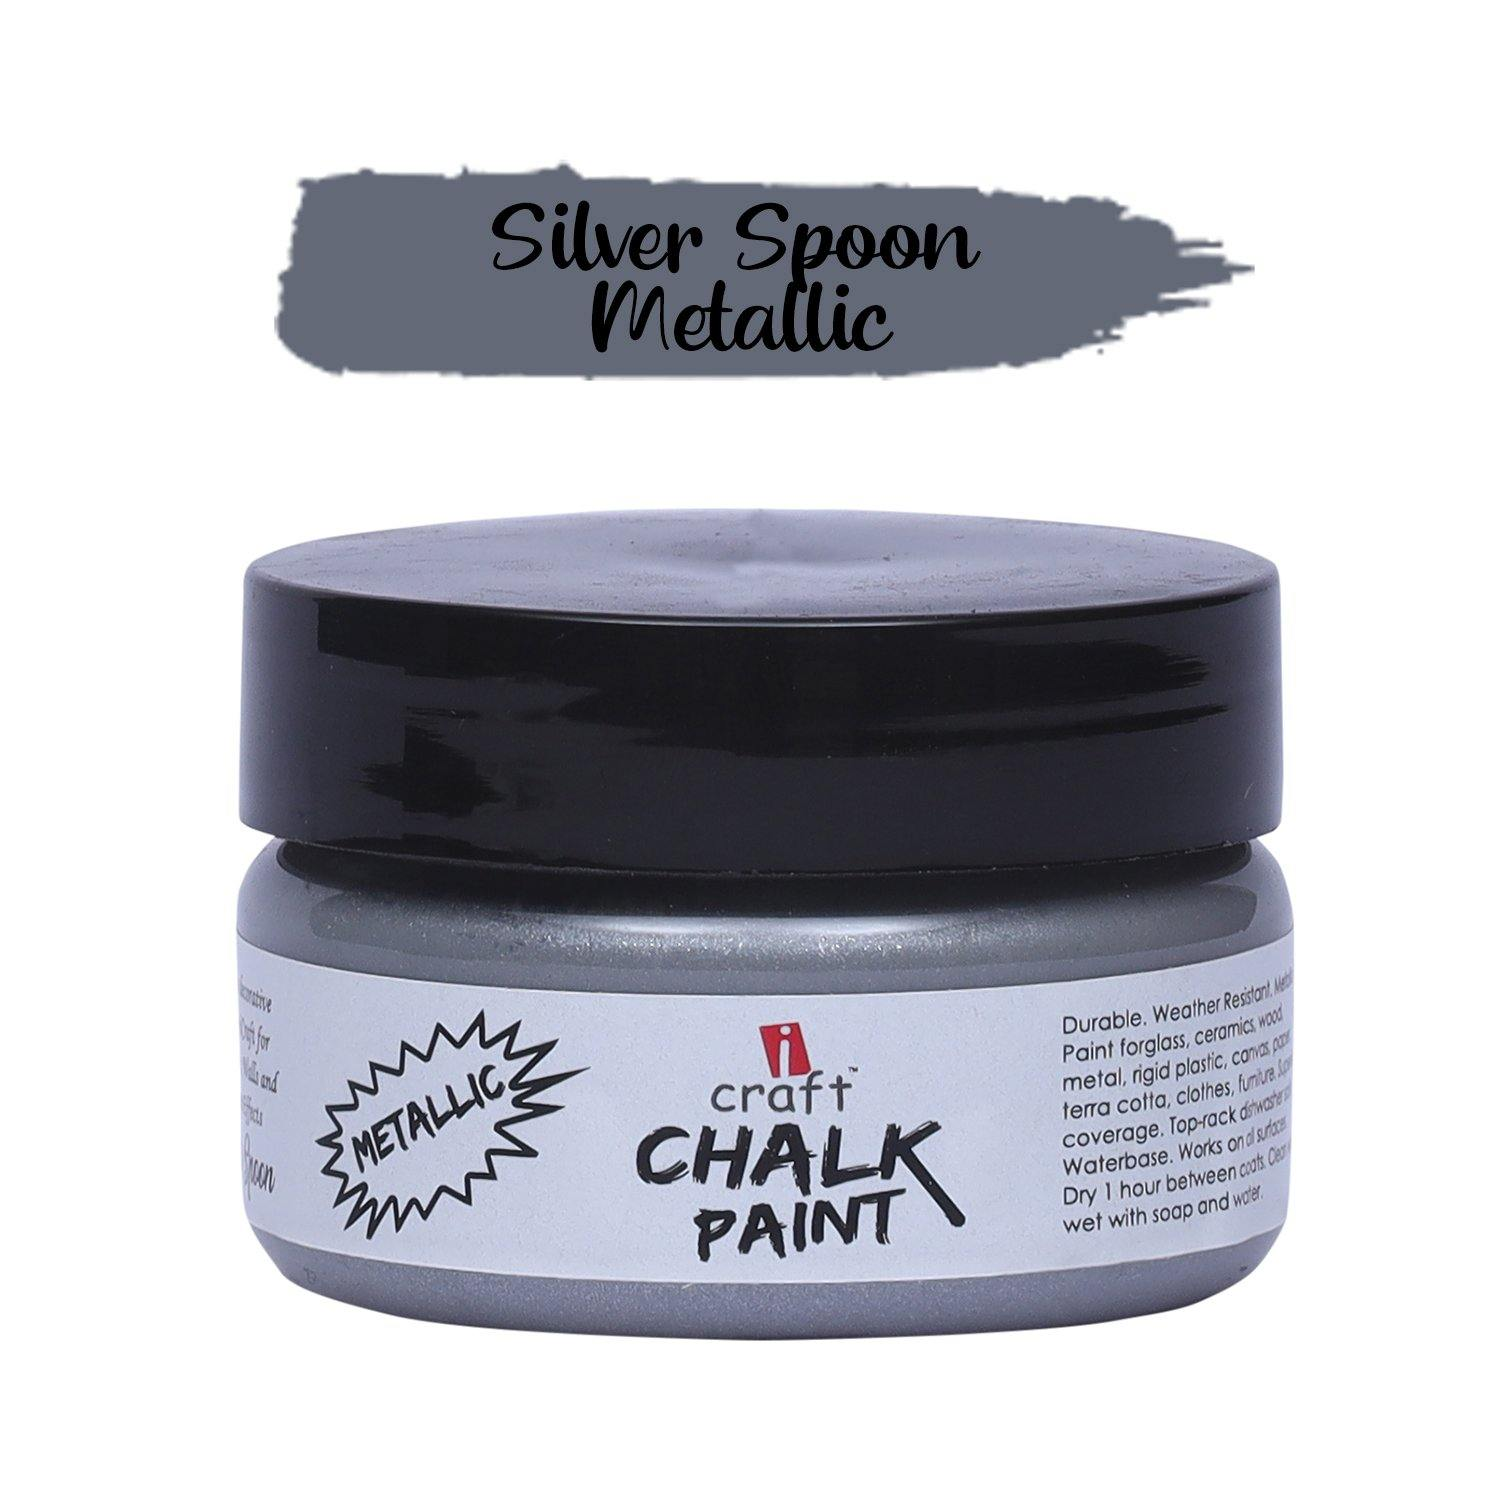 Metallic Chalk Paint - Silver